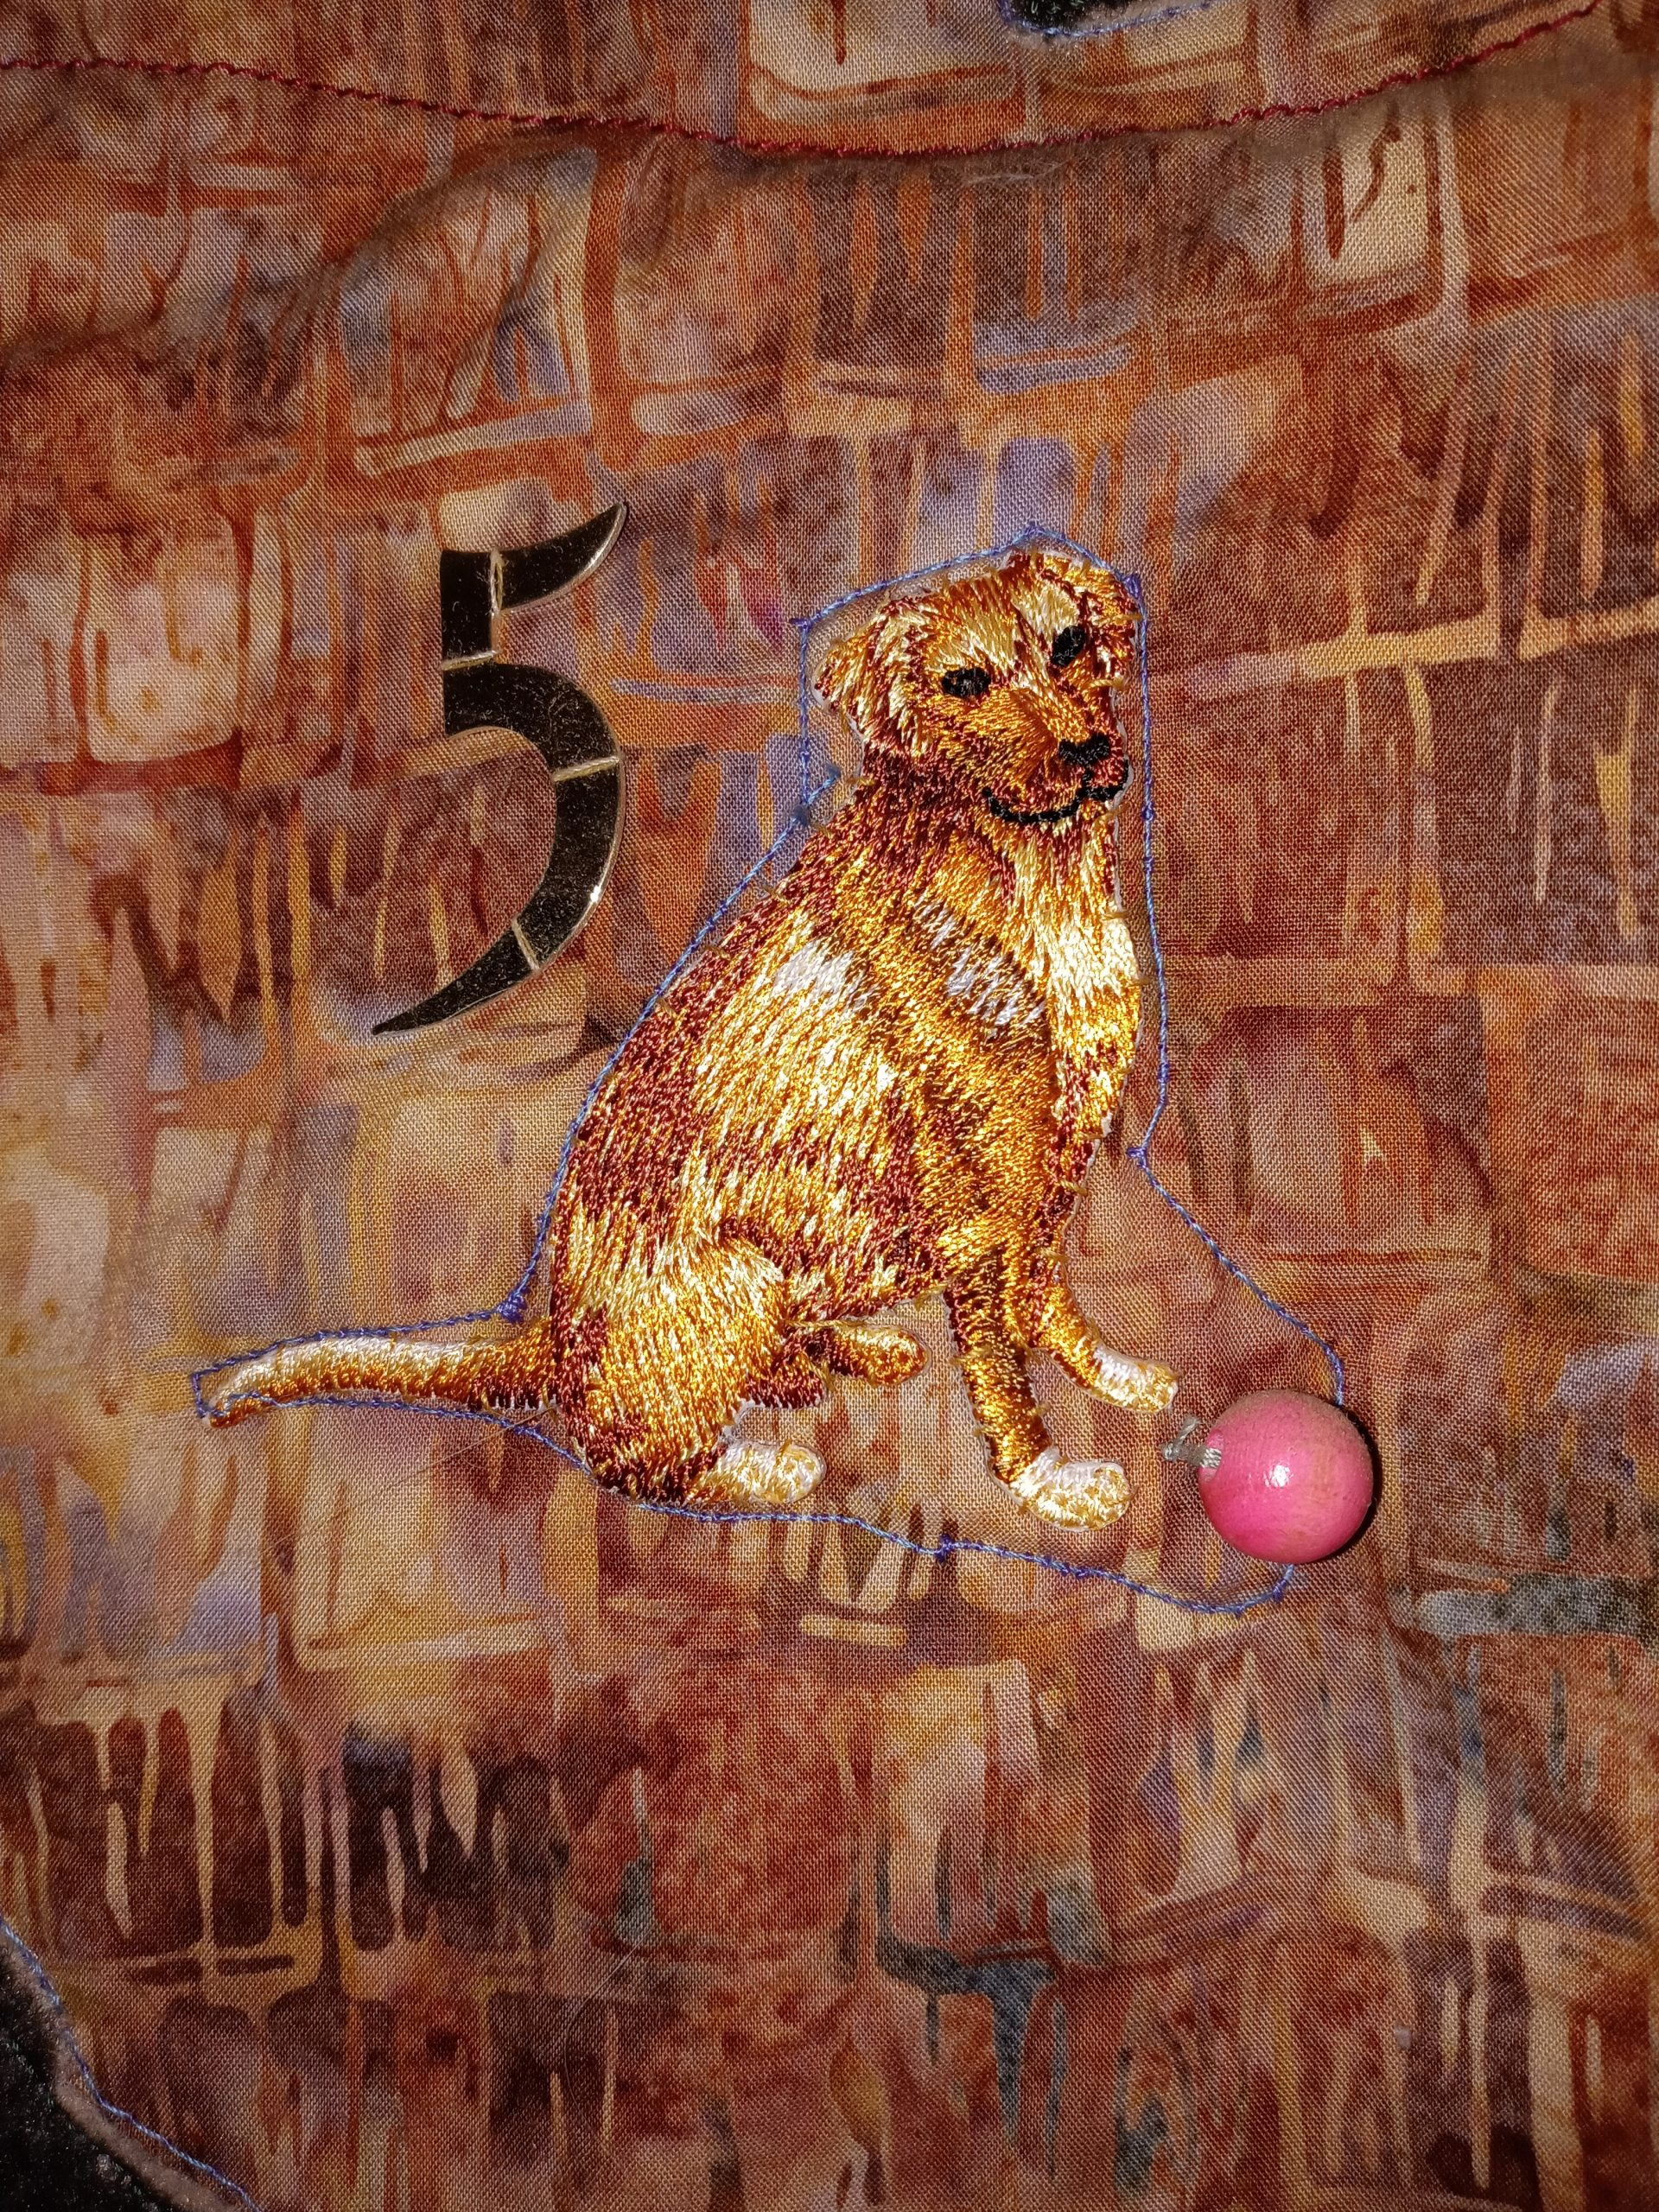 An embroidered dog with a rubber ball and a number 5 from a clock.